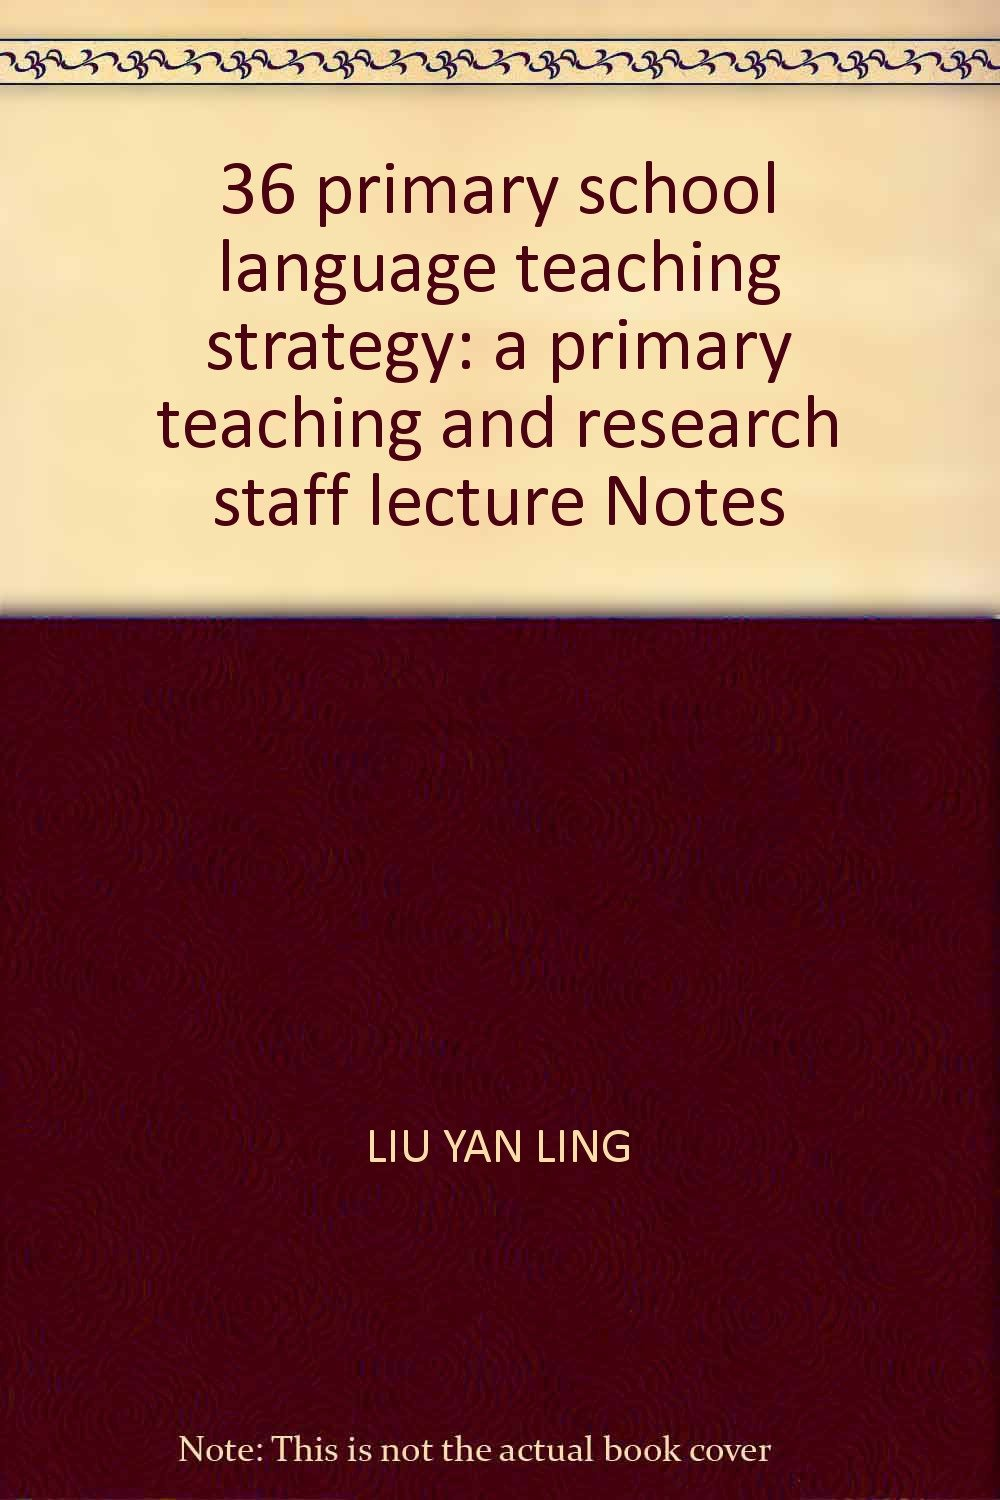 36 primary school language teaching strategy: a primary teaching and research staff lecture Notes pdf epub